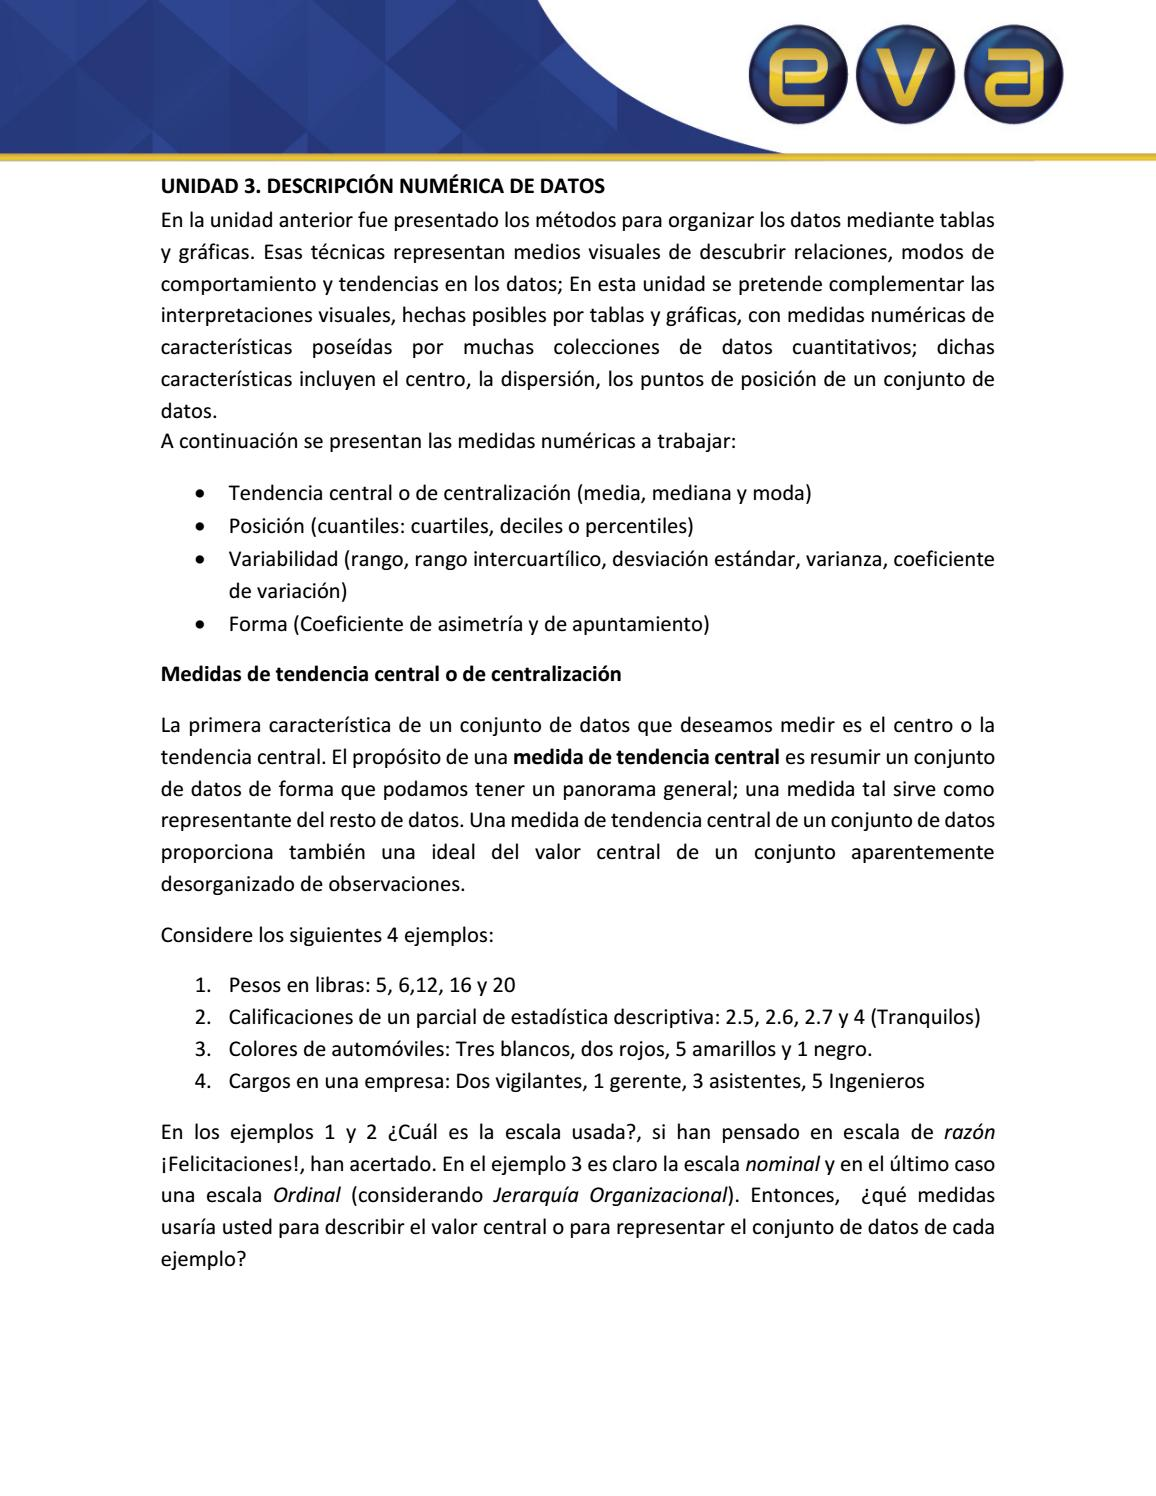 Descripción numérica de datos ap by bcgomez - issuu